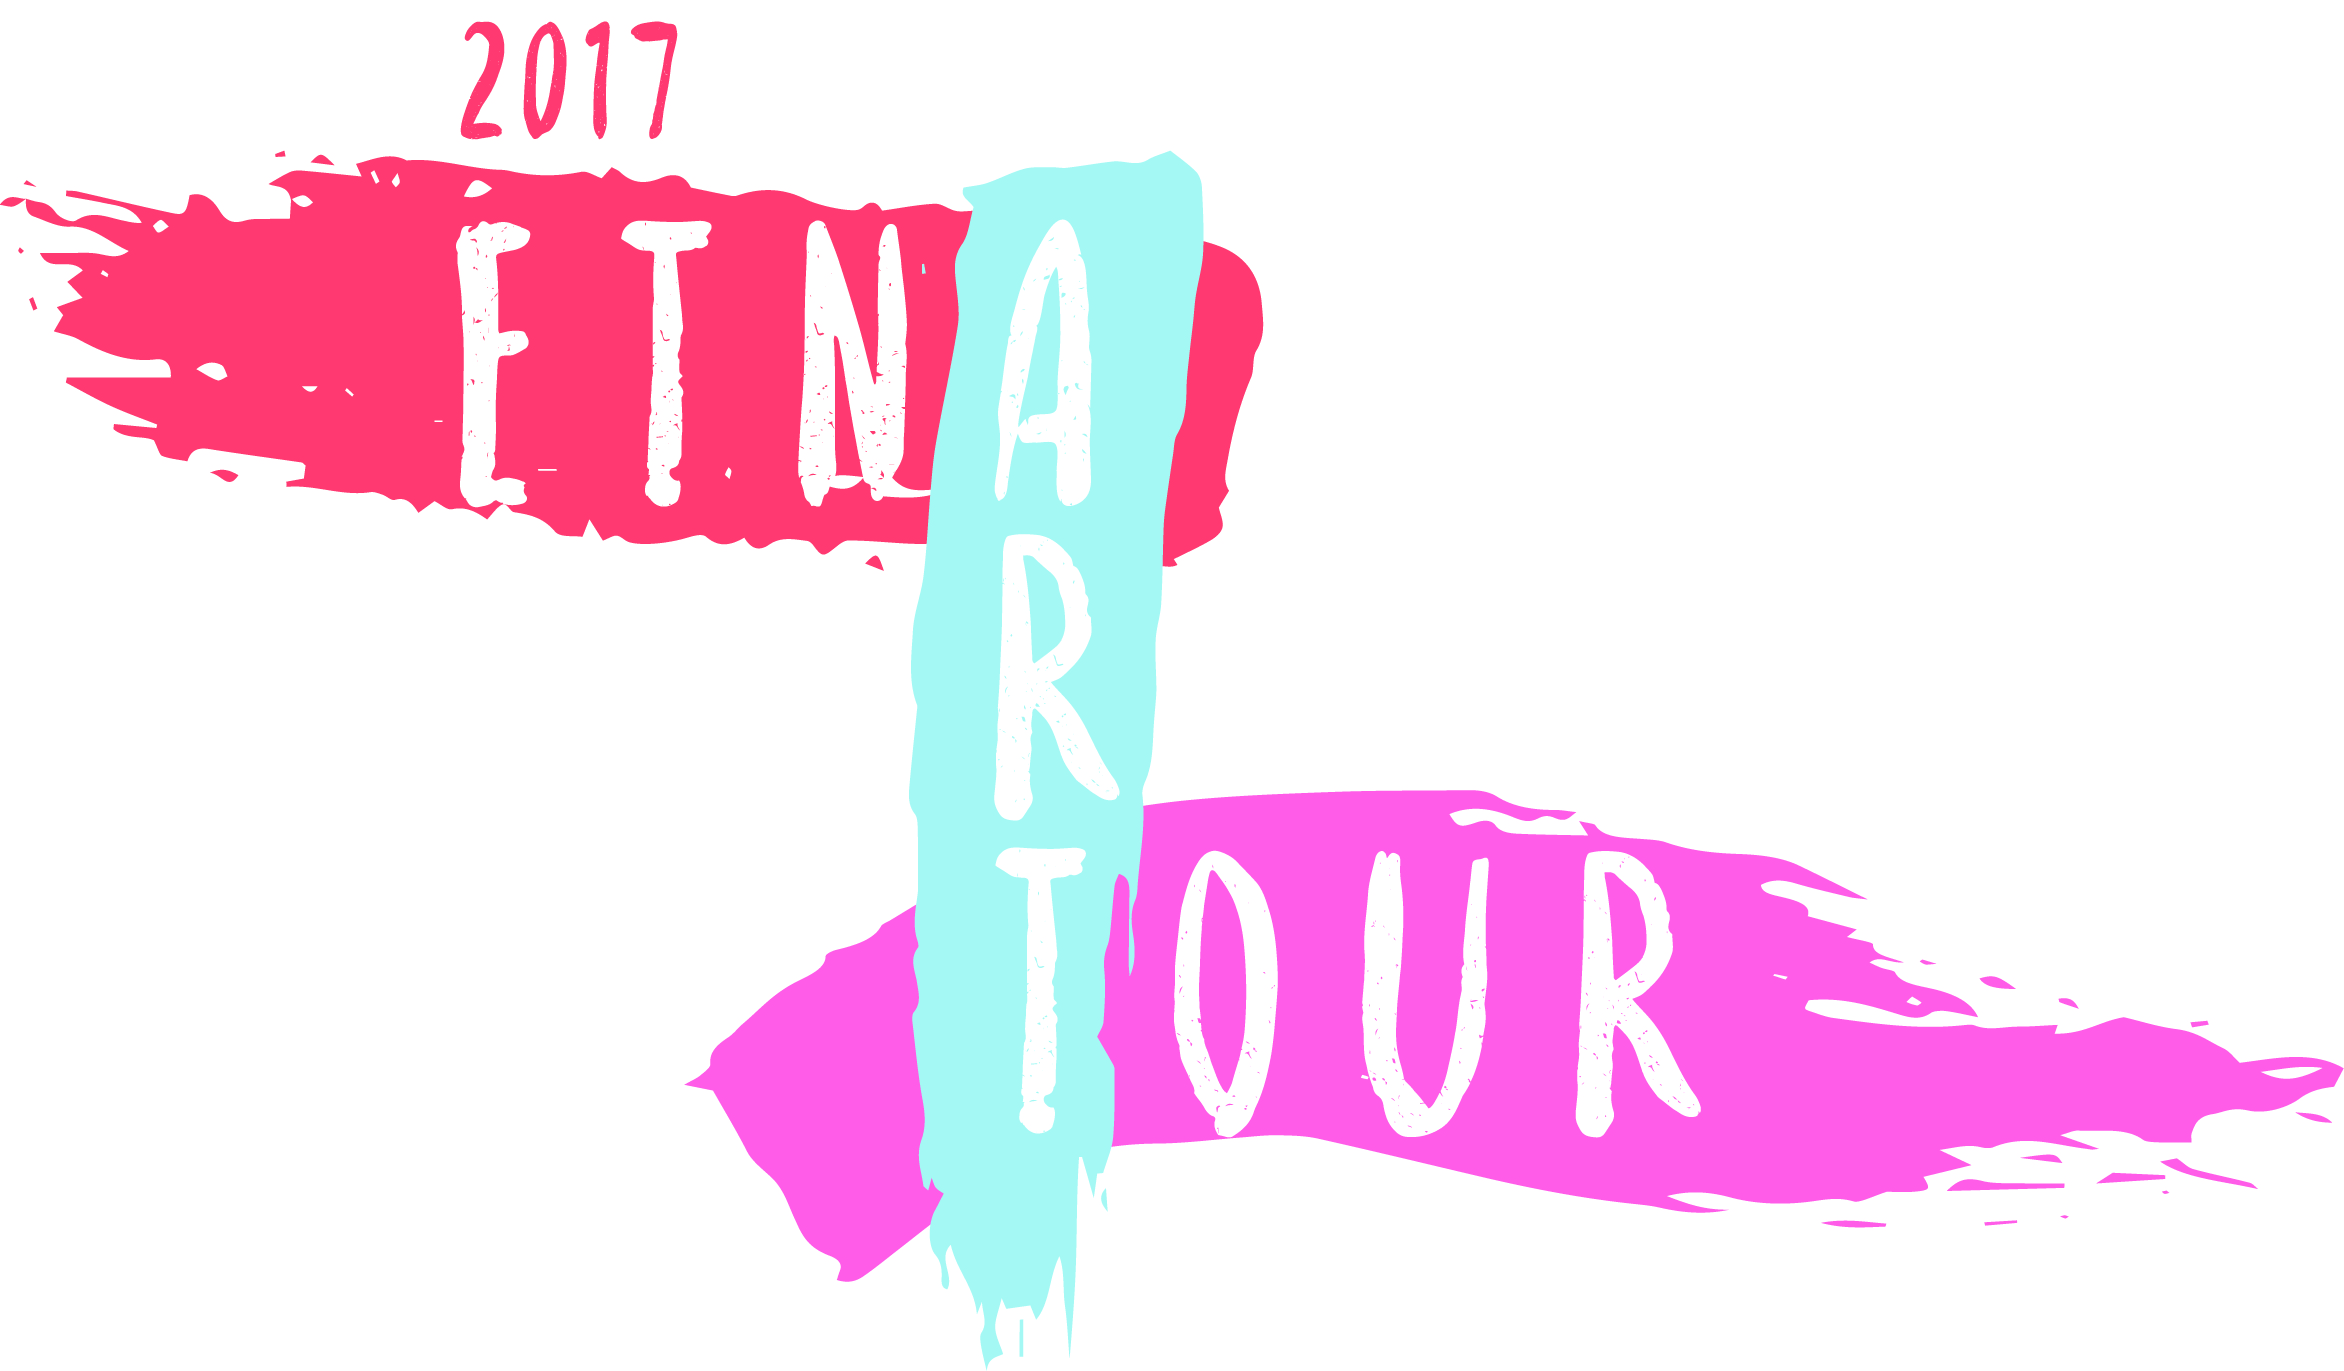 Save the Date for the 2017 Etna Art Tour!